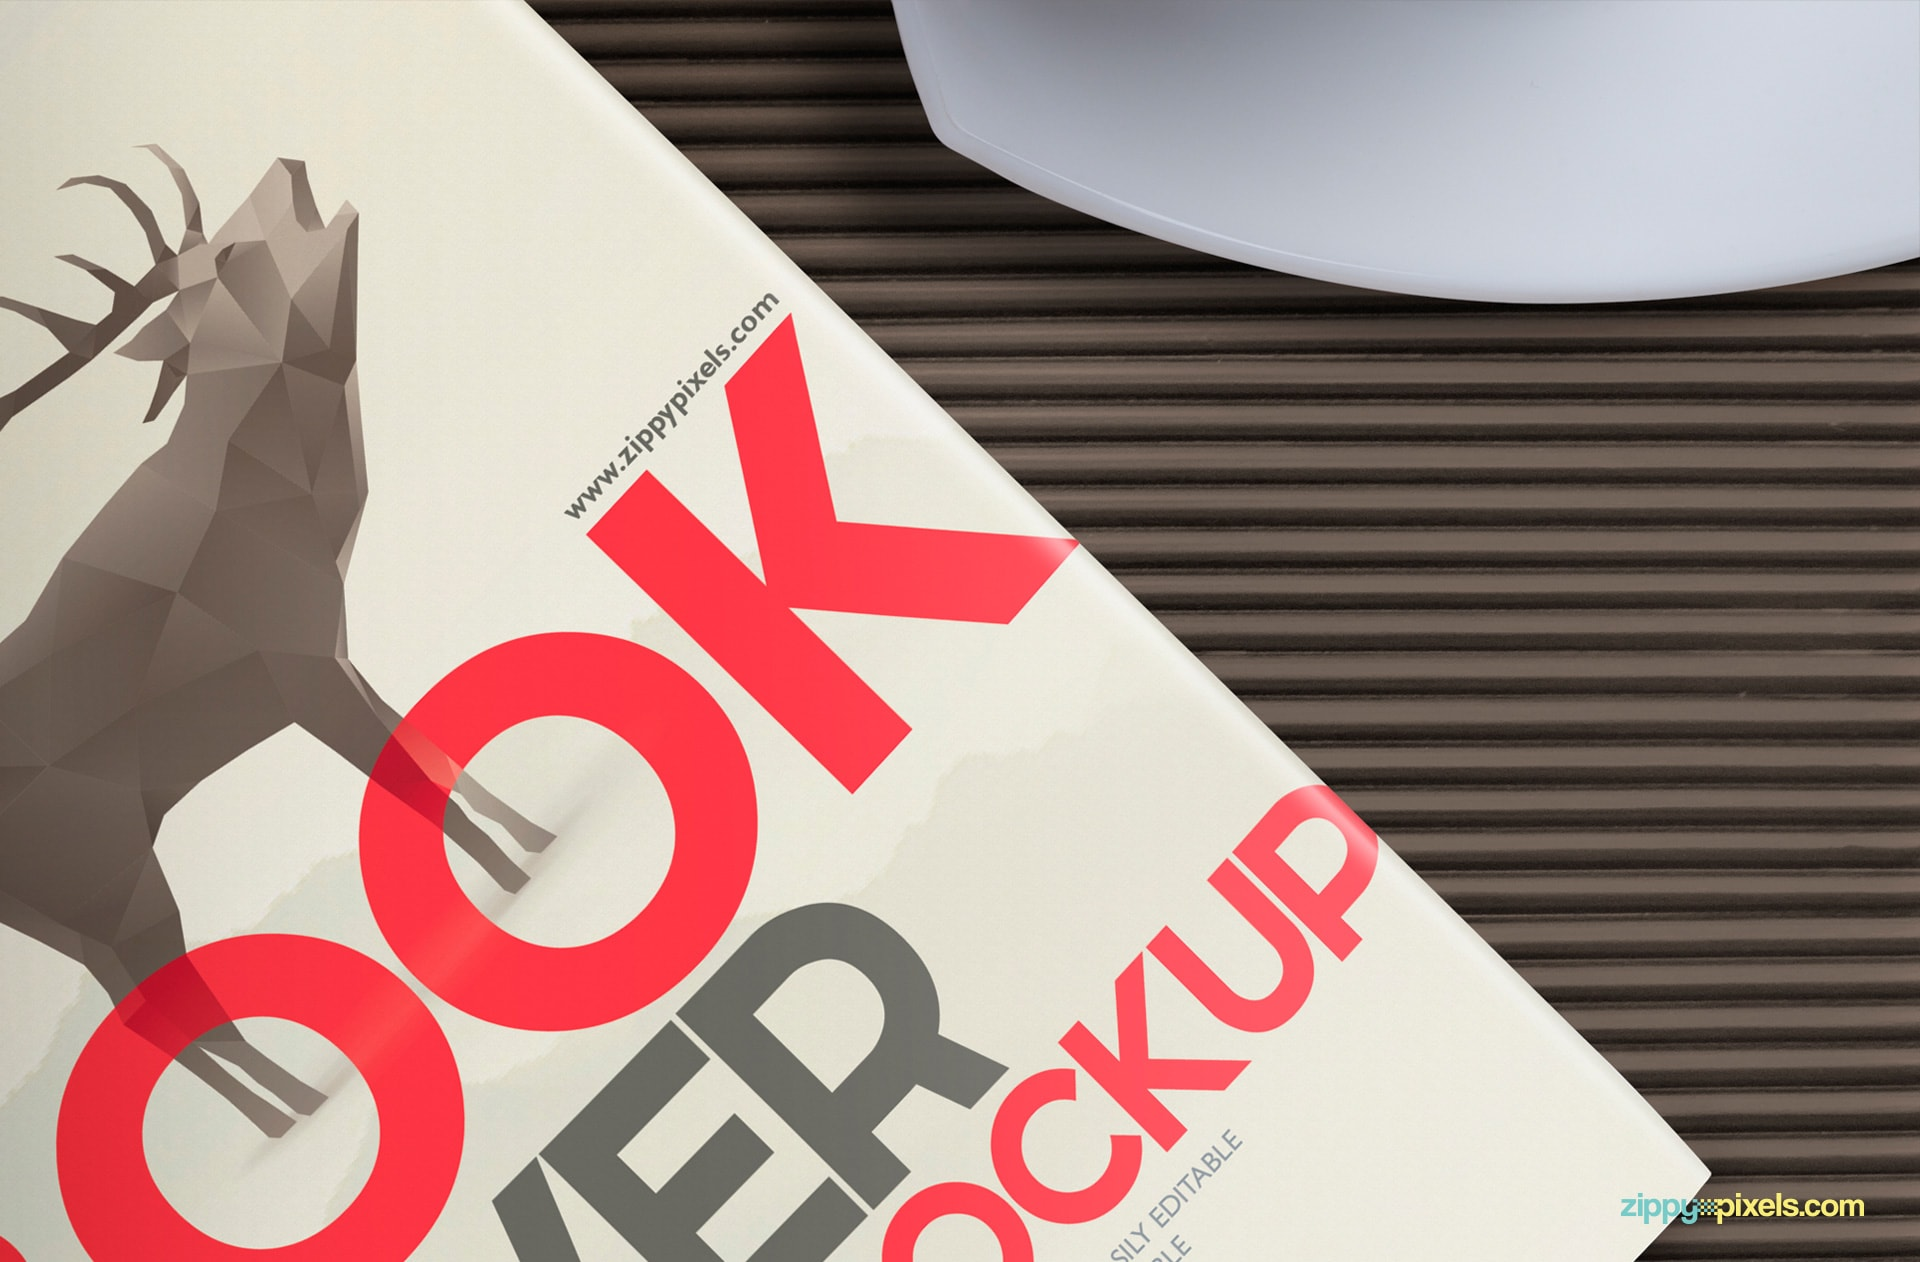 Free-Hardcover-Book-Mockup-for-Cover-Designs-824x542